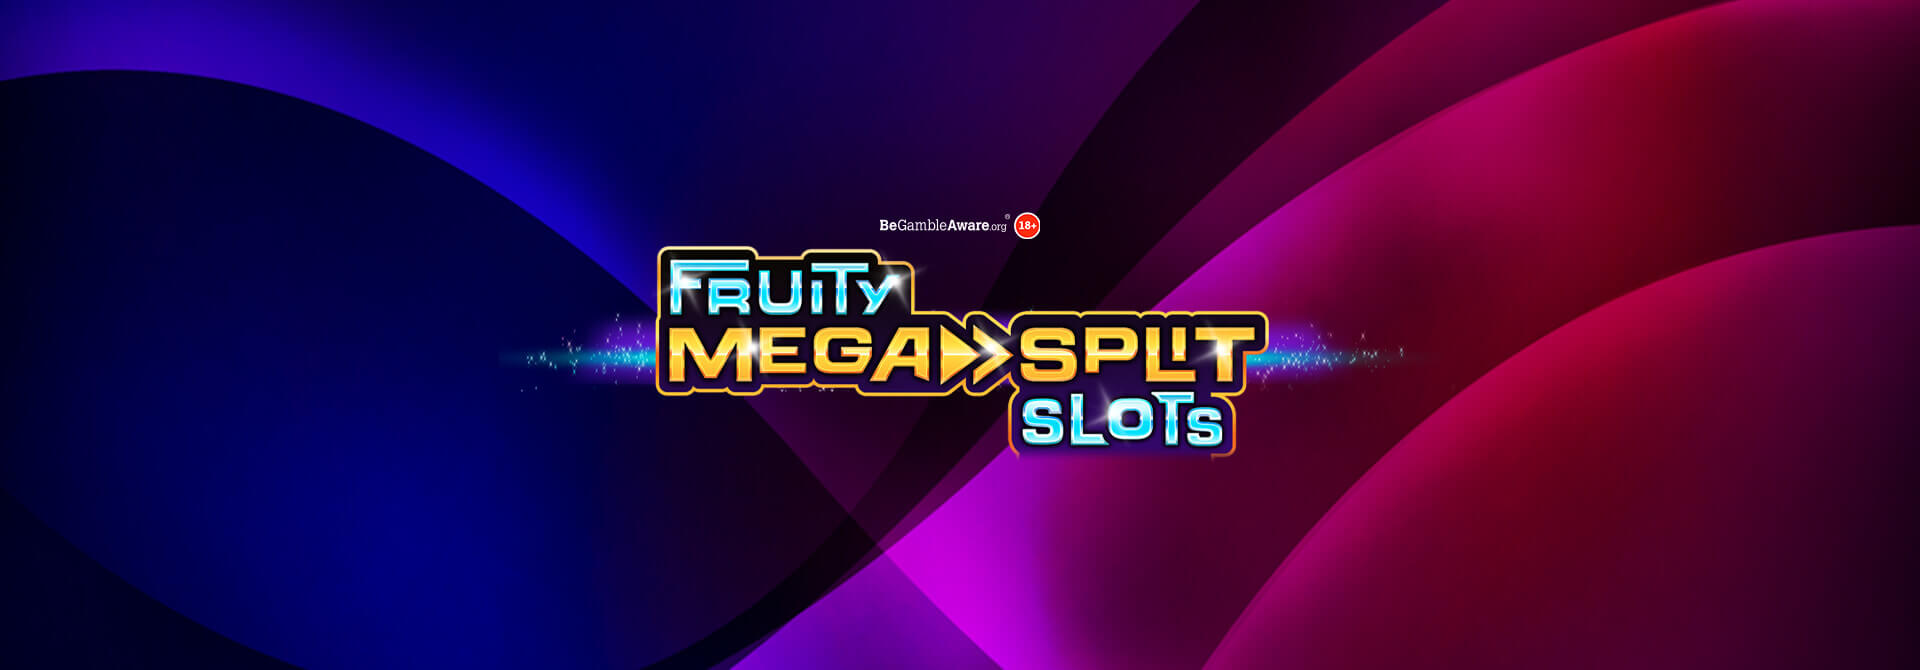 MEGA NEW GAME ALERT: MEET OUR NEW TYPE OF SLOTS GAME, FRUITY MEGA SPLIT SLOTS, WITH OVER 200 WAYS TO WIN!